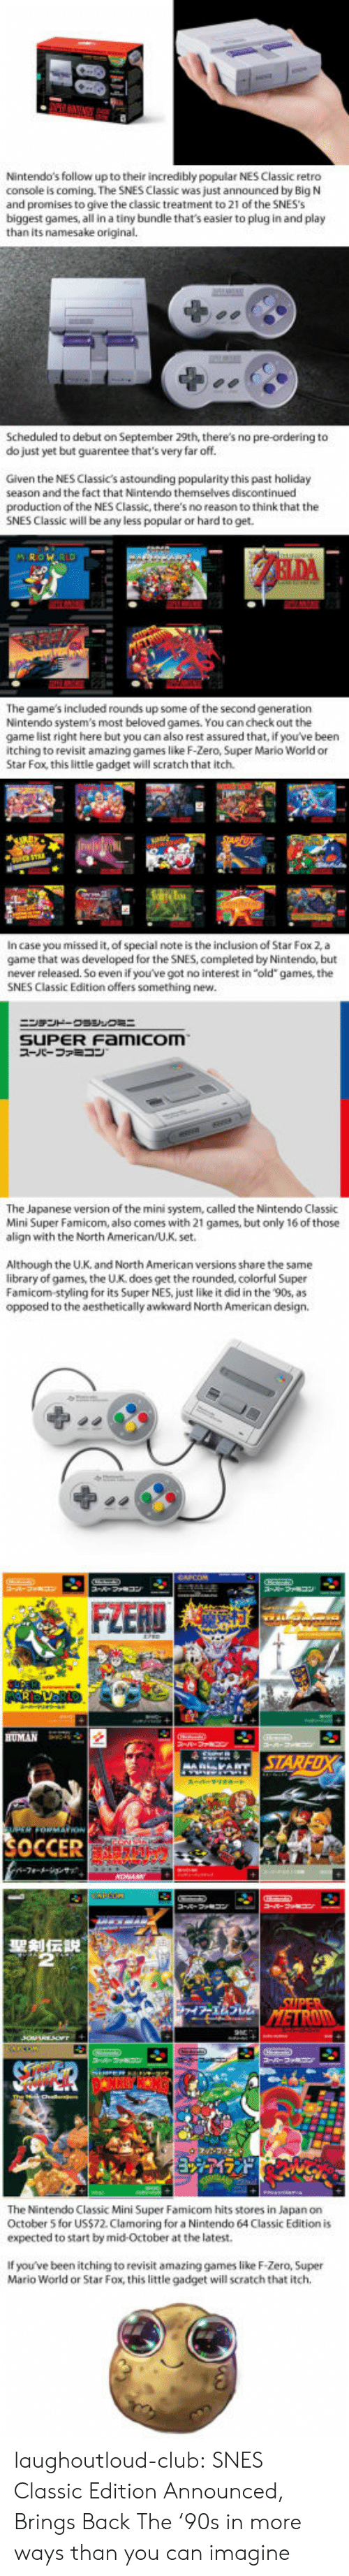 """inclusion: Nintendo's follow up to their incredibly popular NES Classic retro  console is coming. The SNES Classic was just announced by Big N  and promises to give the classic treatment to 21 of the SNES's  biggest games, all in a tiny bundle that's easier to plug in and play  than its namesake original.  Scheduled to debut on September 29th, there's no pre-ordering to  do just yet but guarentee that's very far off.  Given the NES Classic's astounding popularity this past holiday  season and the fact that Nintendo themselves discontinued  production of the NES Classic, there's no reason to think that the  SNES Classic will be any less popular or hard to get.  The game's included rounds up some of the second generation  Nintendo system's most beloved games. You can check out the  game list right here but you can also rest assured that, if you've been  itching to revisit amazing games like F-Zero, Super Mario World or  Star Fox, this little gadget will scratch that itch.  In case you missed it, of special note is the inclusion of Star Fox 2,a  game that was developed for the SNES, completed by Nintendo, but  never released. So even if you've got no interest in """"old"""" games, the  SNES Classic Edition offers something new.  SUPER Famicom  スーパーファミコン  The Japanese version of the mini system, called the Nintendo Classic  Mini Super Famicom, also comes with 21 games, but only 16 of those  align with the North American/U.K, set.  Although the U.K. and North American versions share the same  library of games, the U.K. does get the rounded, colorful Super  Famicom-styling for its Super NES, just like it did in the 90s, as  opposed to the aesthetically awkward North American design.  HUMAN  SOCCER  The Nintendo Classic Mini Super Famicom hits stores in Japan on  October 5 for US$72 Clamoring for a Nintendo 64 Classic Edition is  expected to start by mid-October at the latest.  If you've been itching to revisit amazing games like F-Zero, Super  Mario World or Star Fox, this litt"""